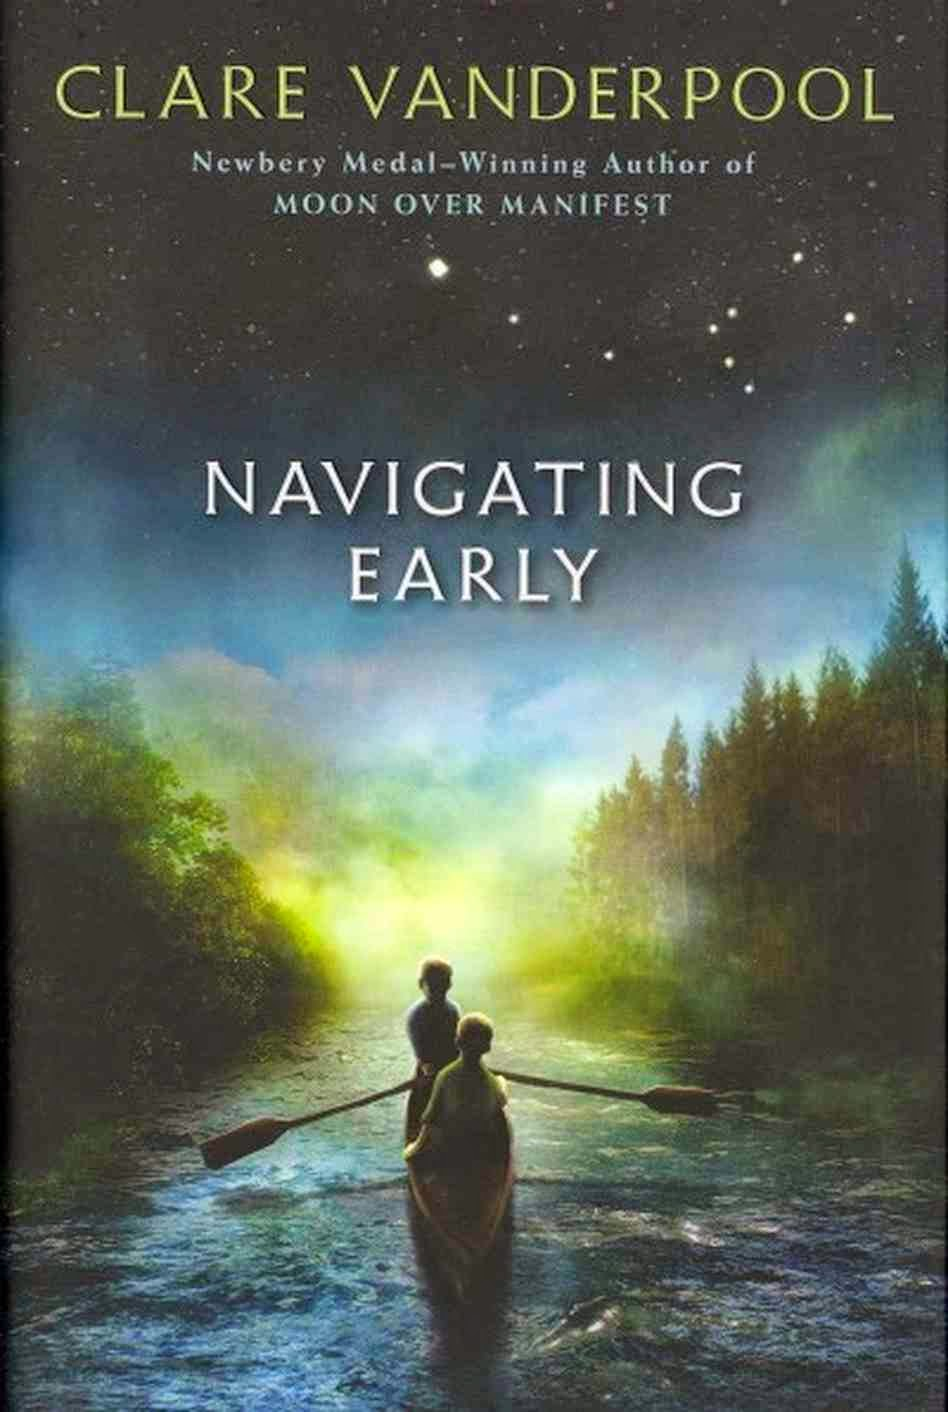 Book cover: Navigating Early by Clare Vanderpool. Two boys row a boat on a river, surrounded on each side by trees.